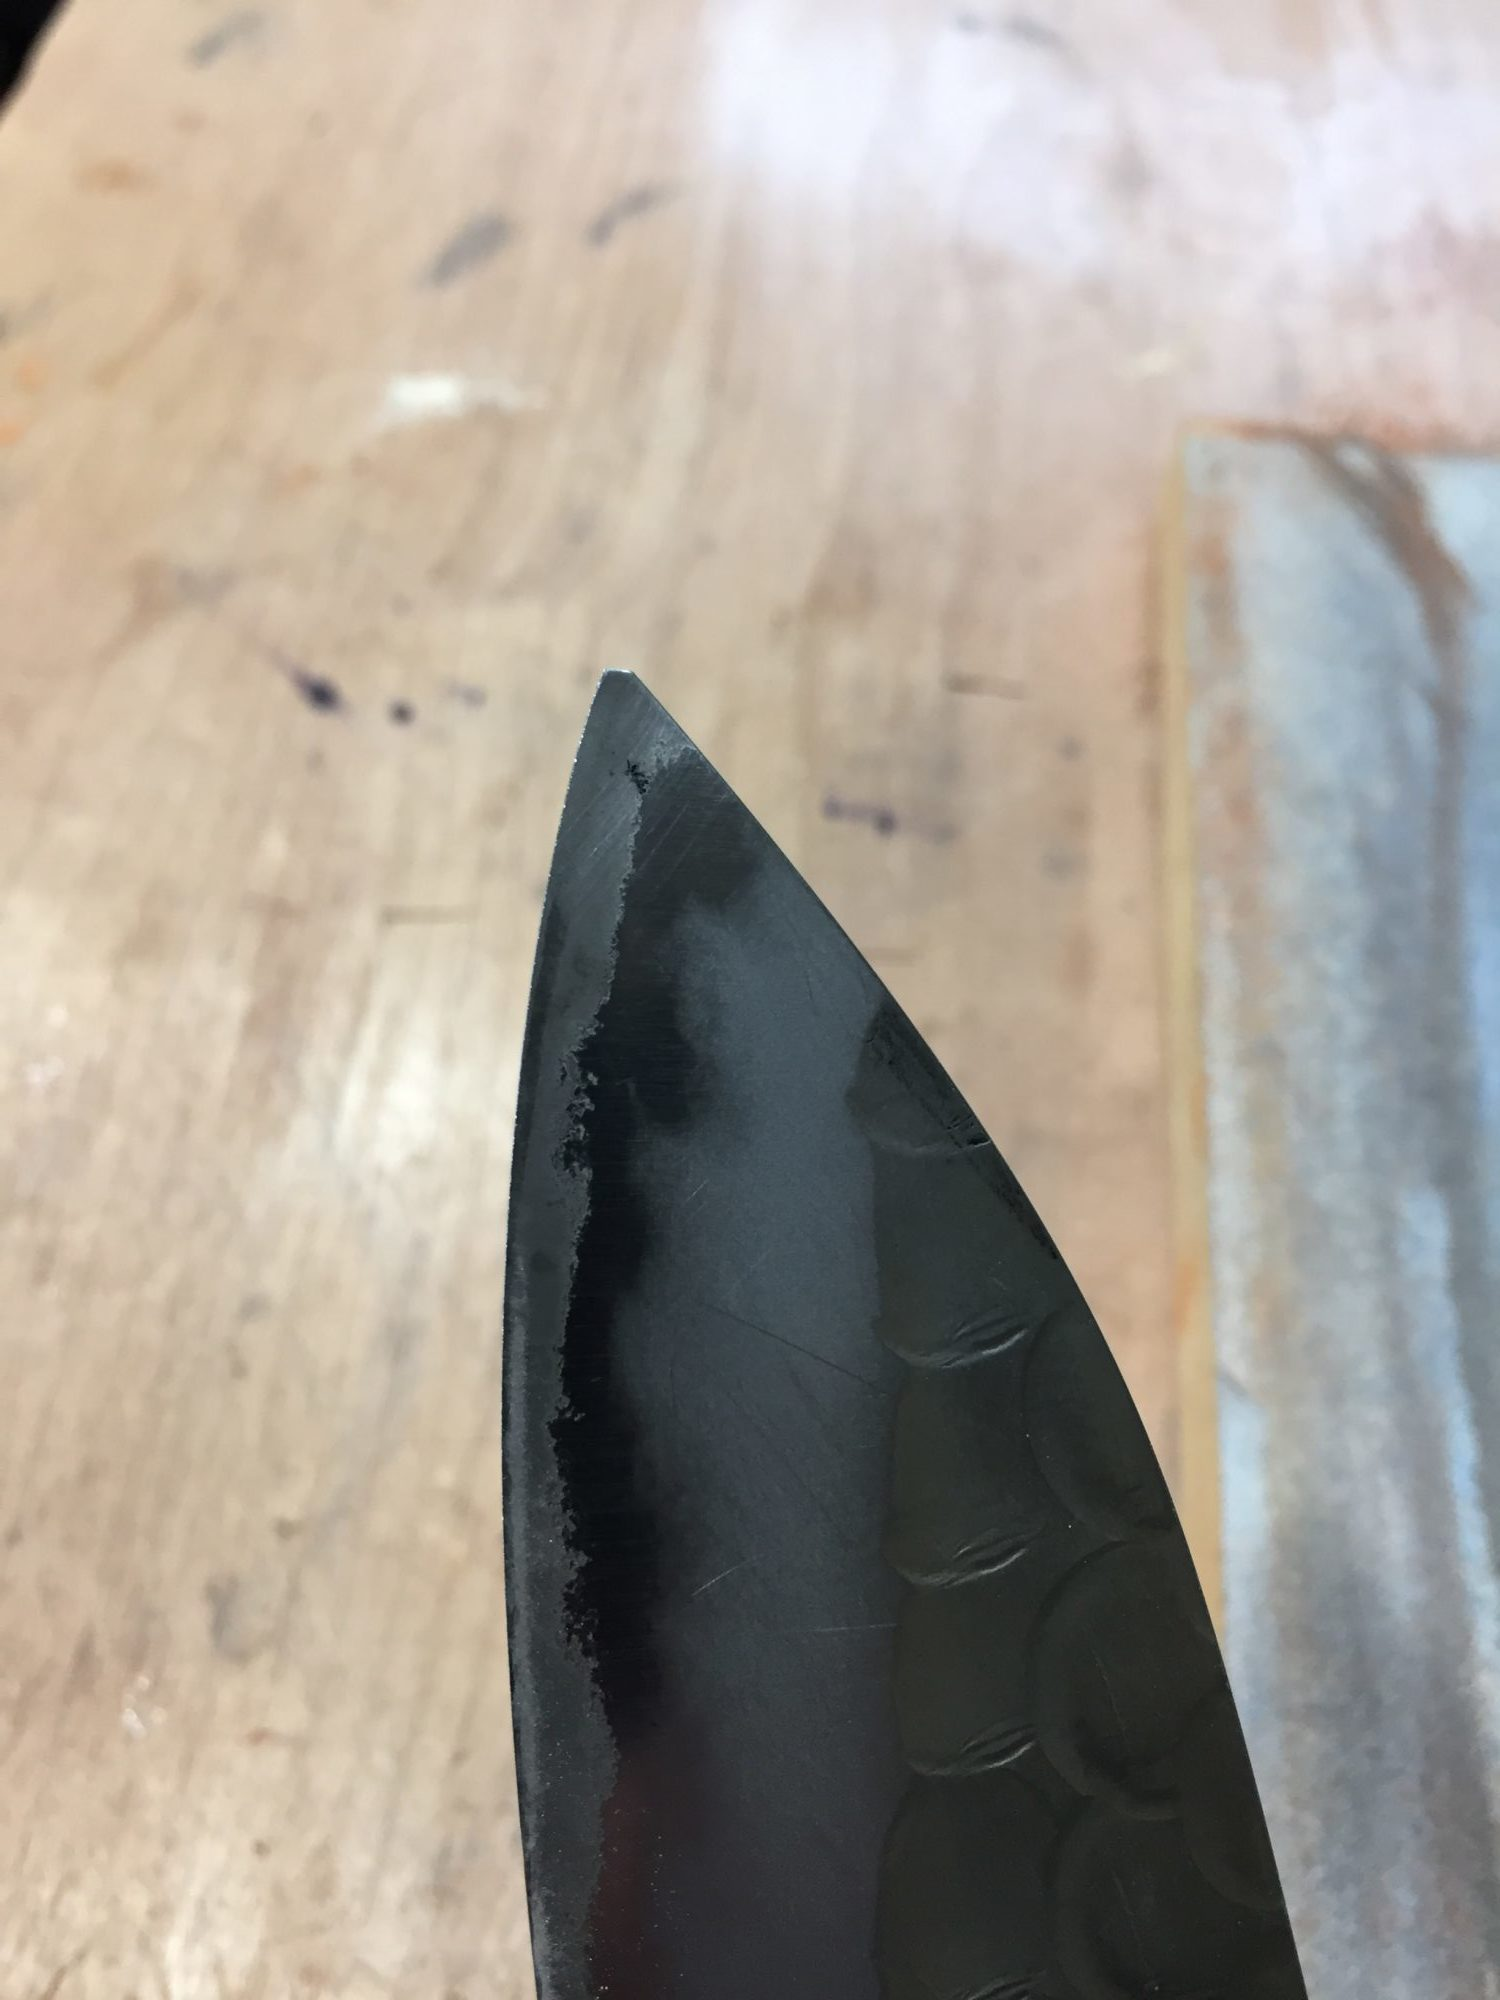 Japanese chef knife with missing tip